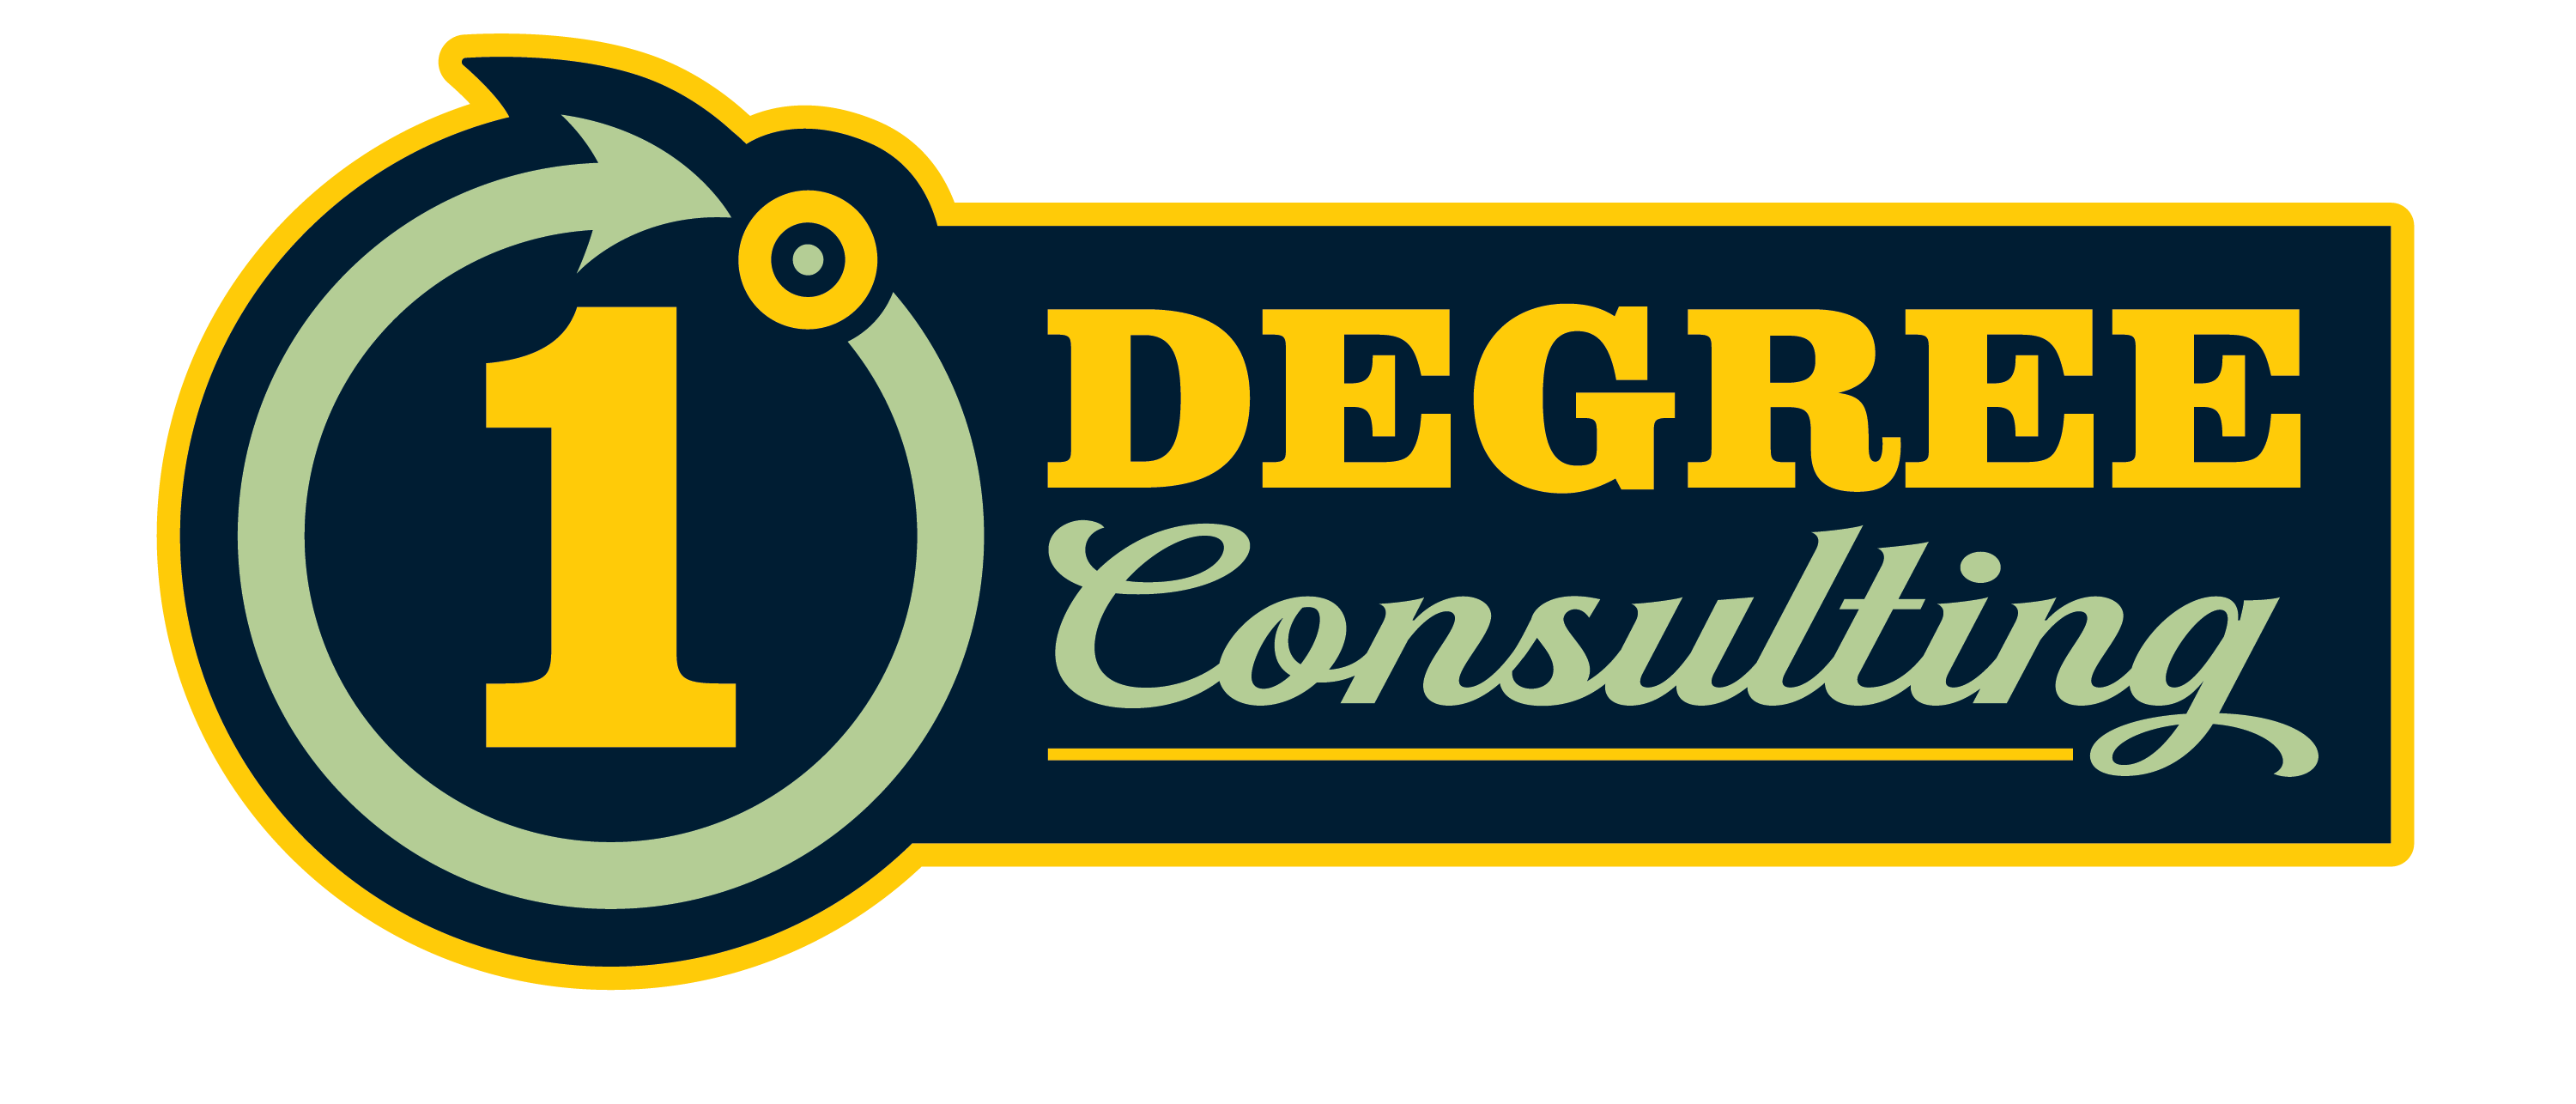 1 Degree Consulting